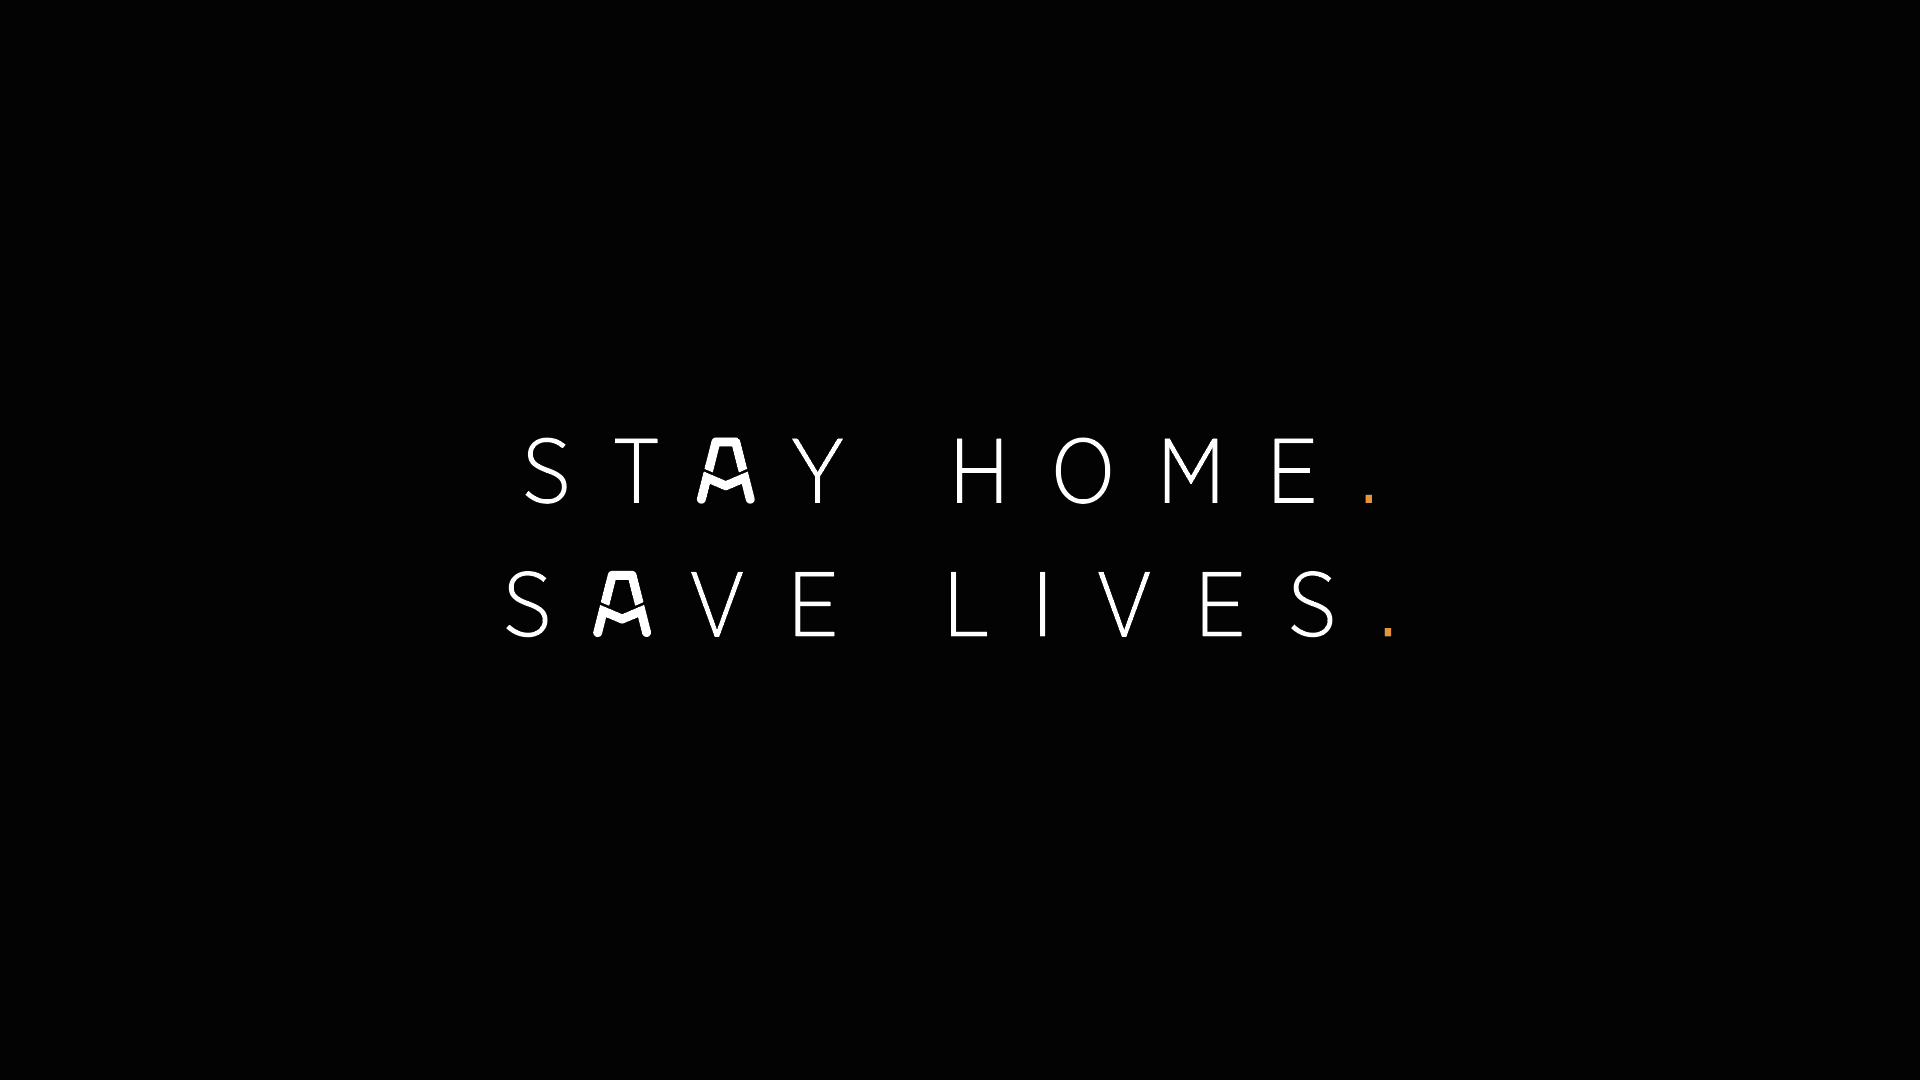 Stay Home Save Lives